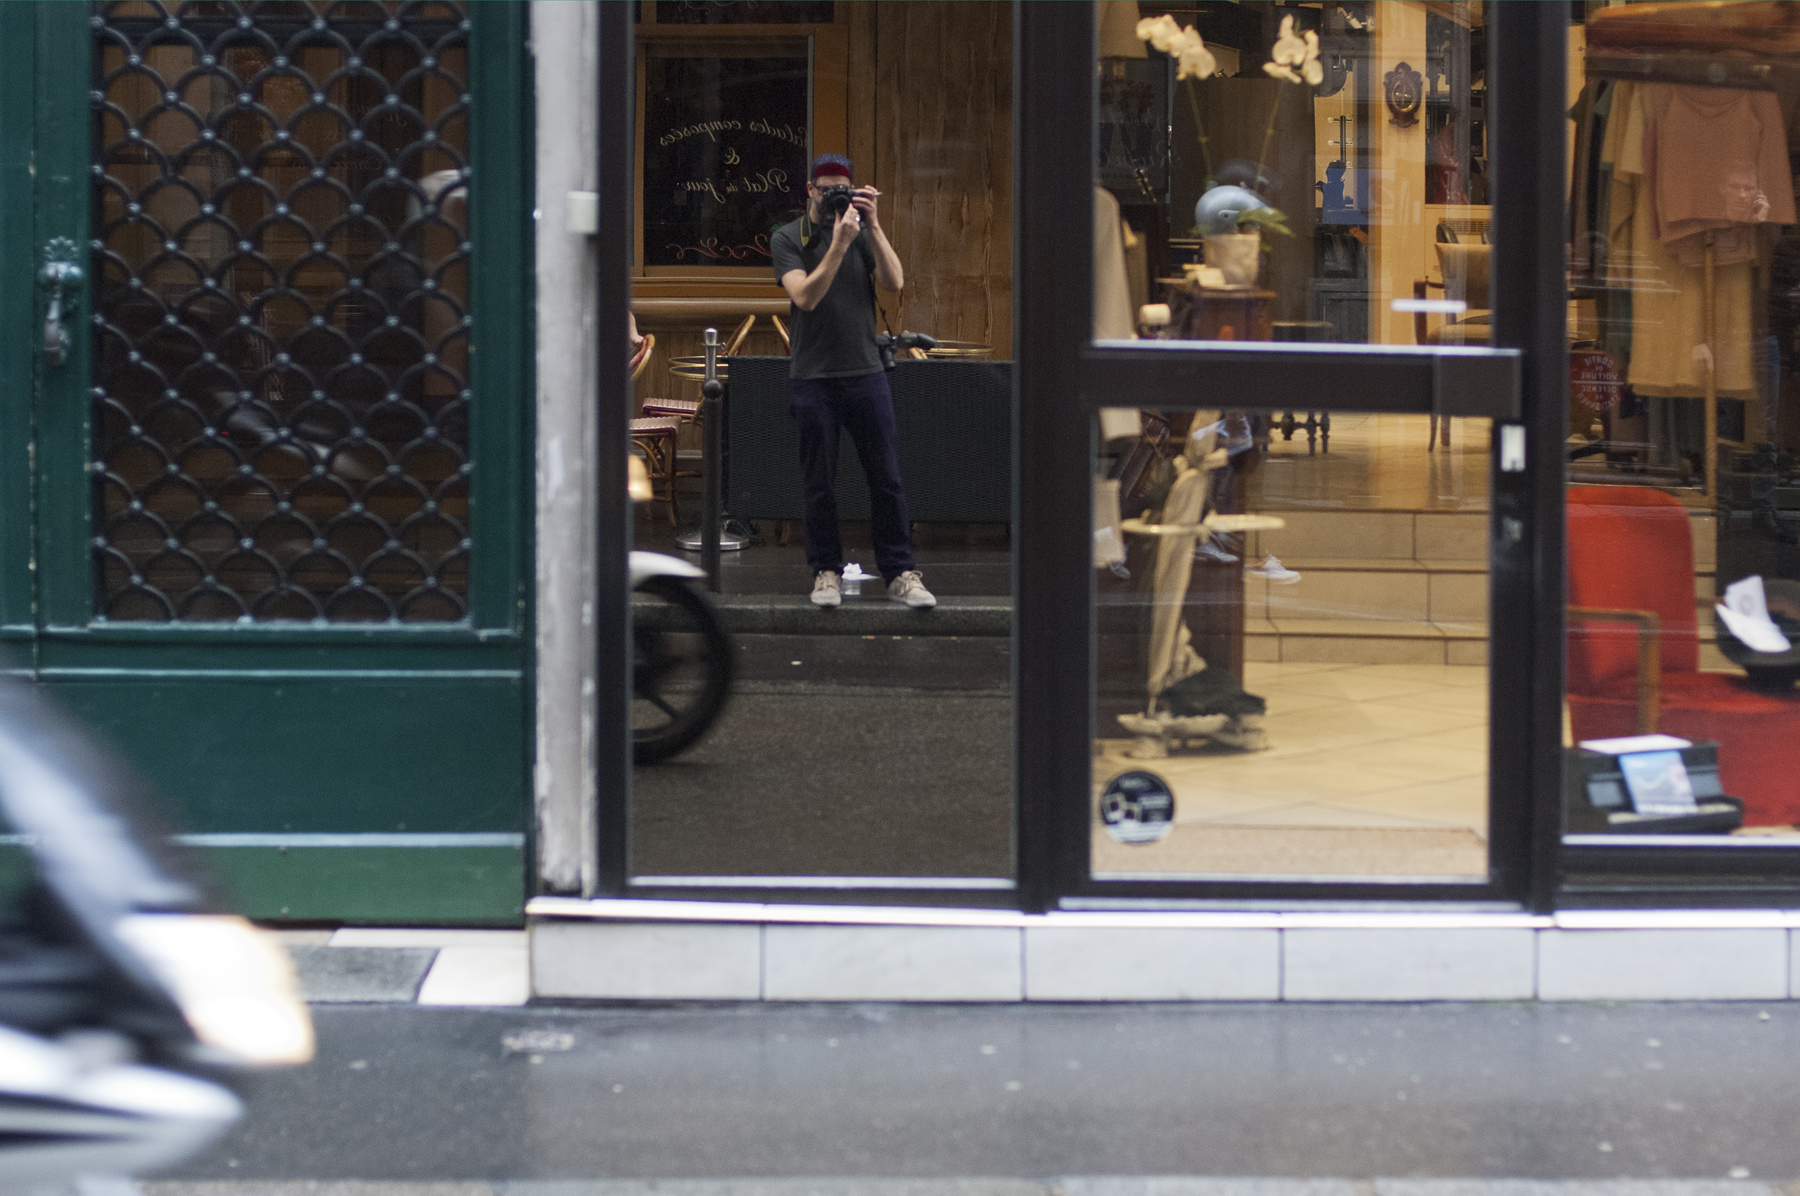 Self-portrait, Rue de Richelieu, November 2014.